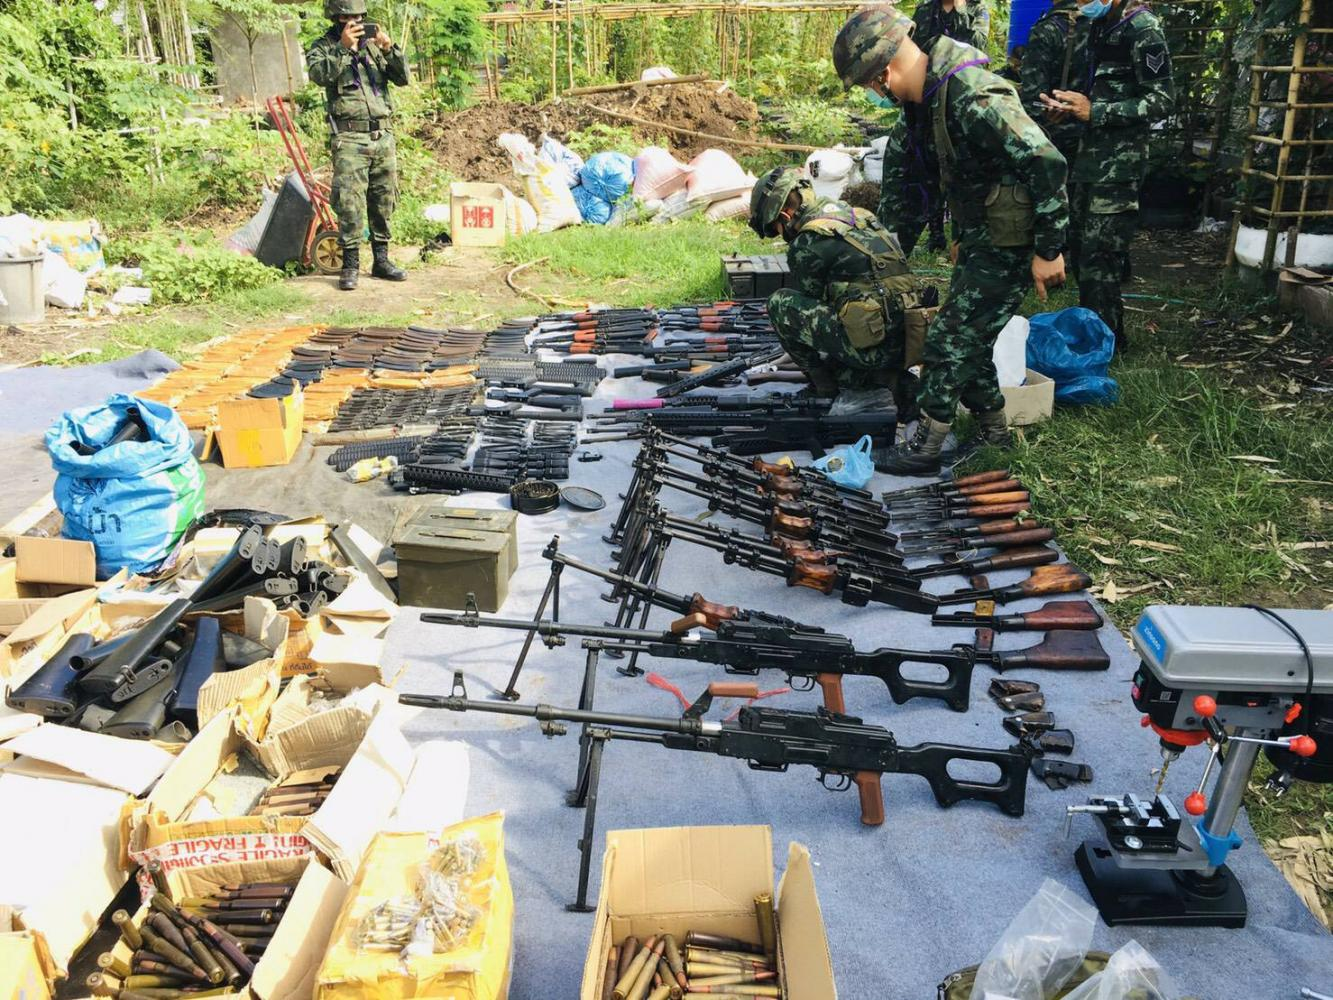 Soldiers display weapons and ammunition found at a home in Tak's Mae Sot district on Tuesday. The weapons are suspected to be part of a plot to stir up political unrest. POLICE PHOTO